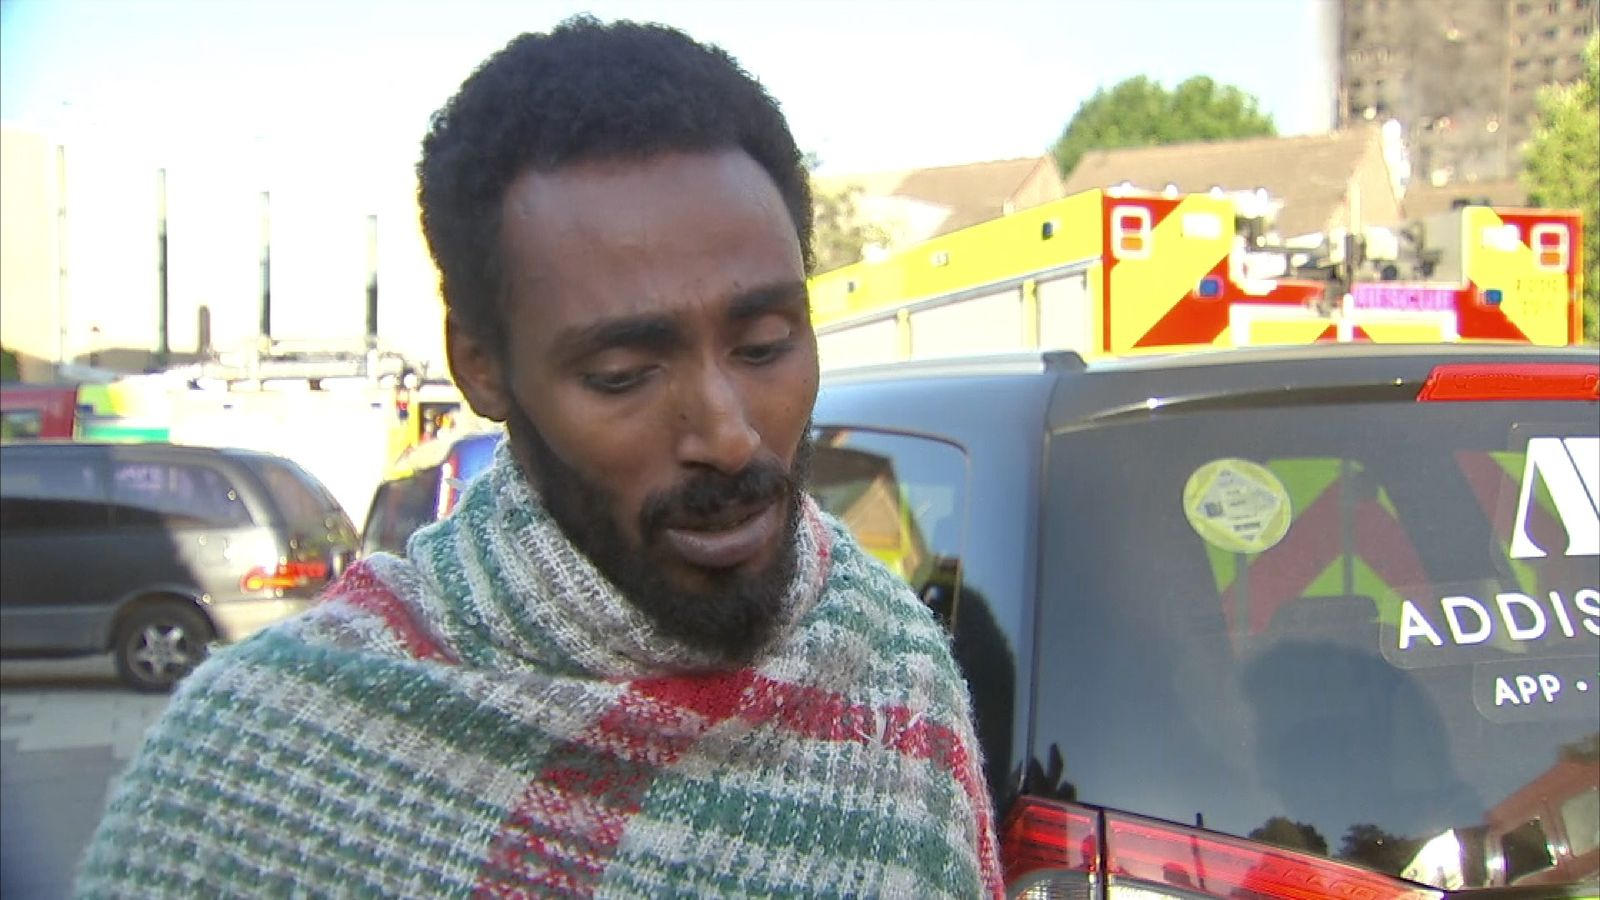 Grenfell Tower resident Mahad Egal says the fire started when a fridge exploded